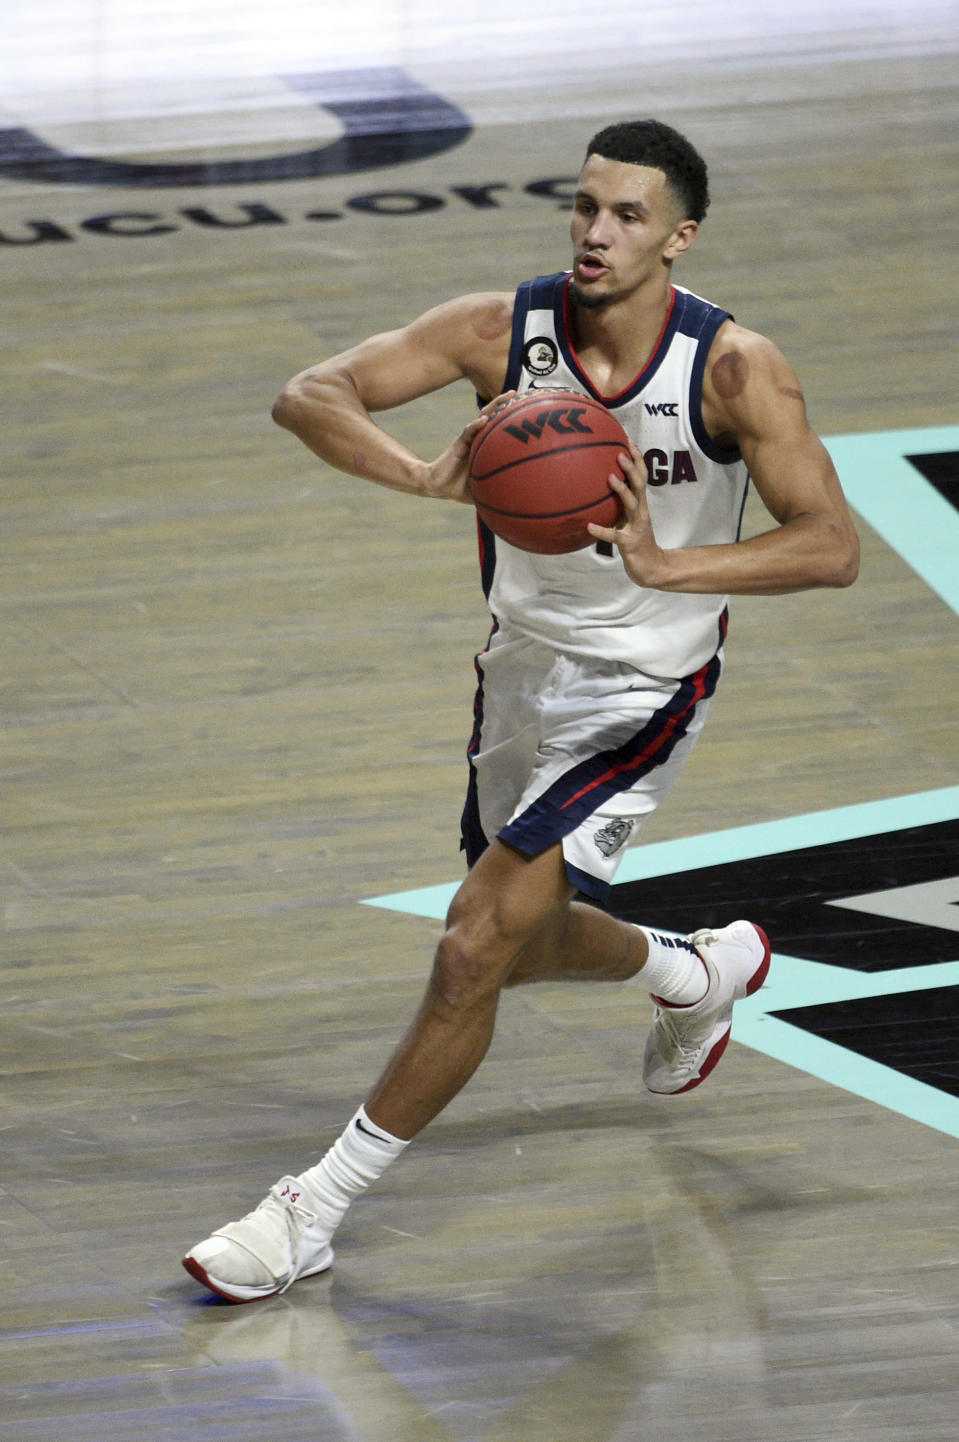 Gonzaga guard Joel Ayayi (11) looks to pass the ball against Saint Mary's during the first half of an NCAA semifinal college basketball game against Saint Mary's at the West Coast Conference tournament Monday, March 8, 2021, in Las Vegas. (AP Photo/David Becker)